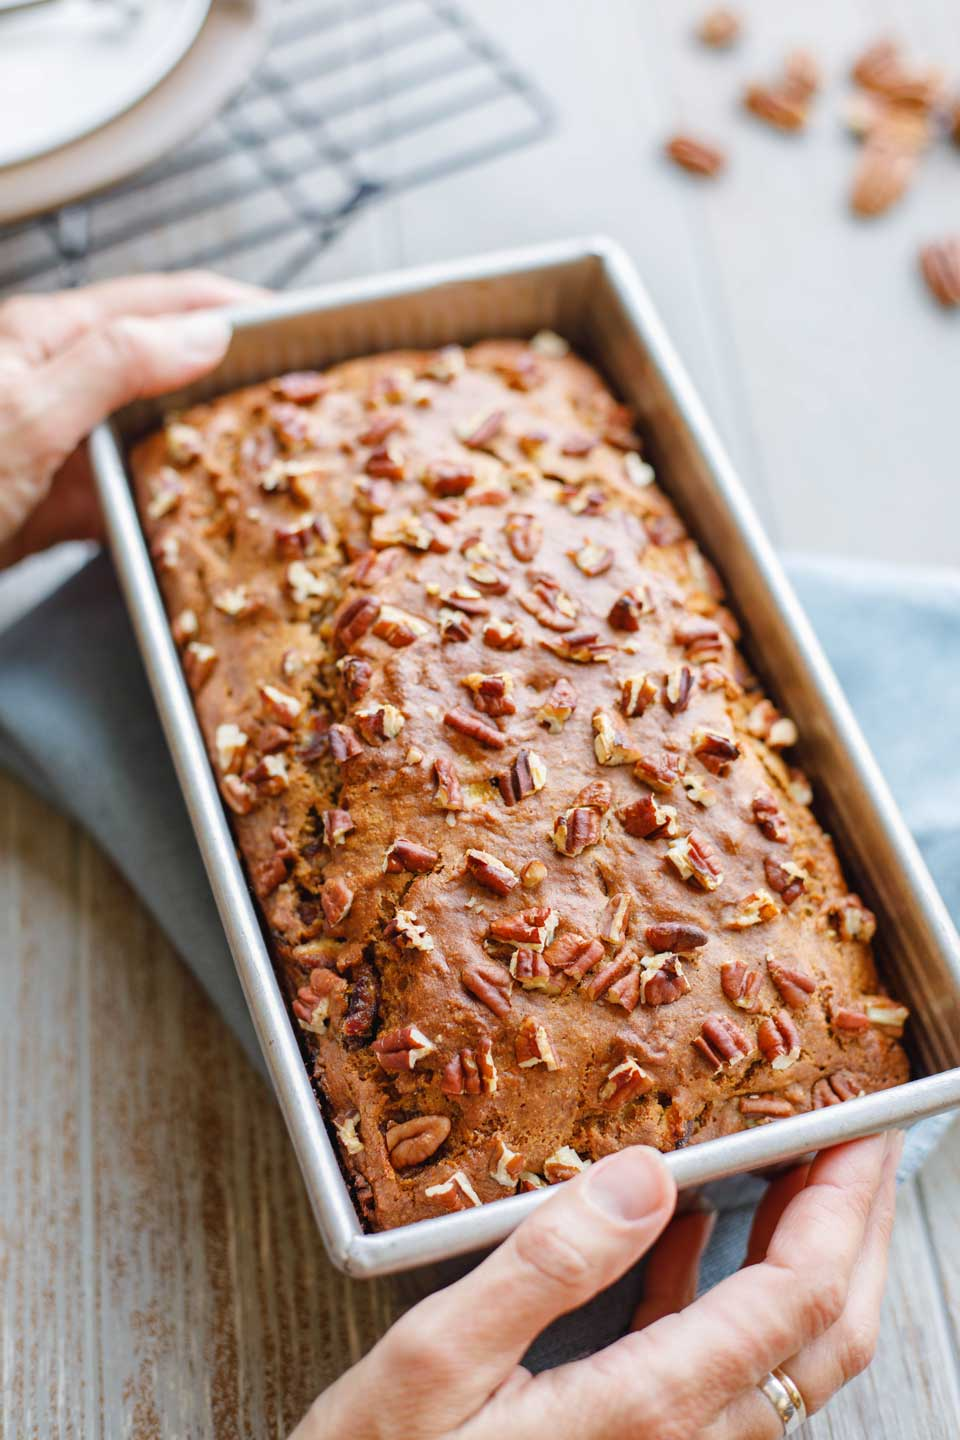 Final baked loaf pan of this Healthy Whole Wheat Banana Bread recipe, being held by two hands, resting on a blue cloth